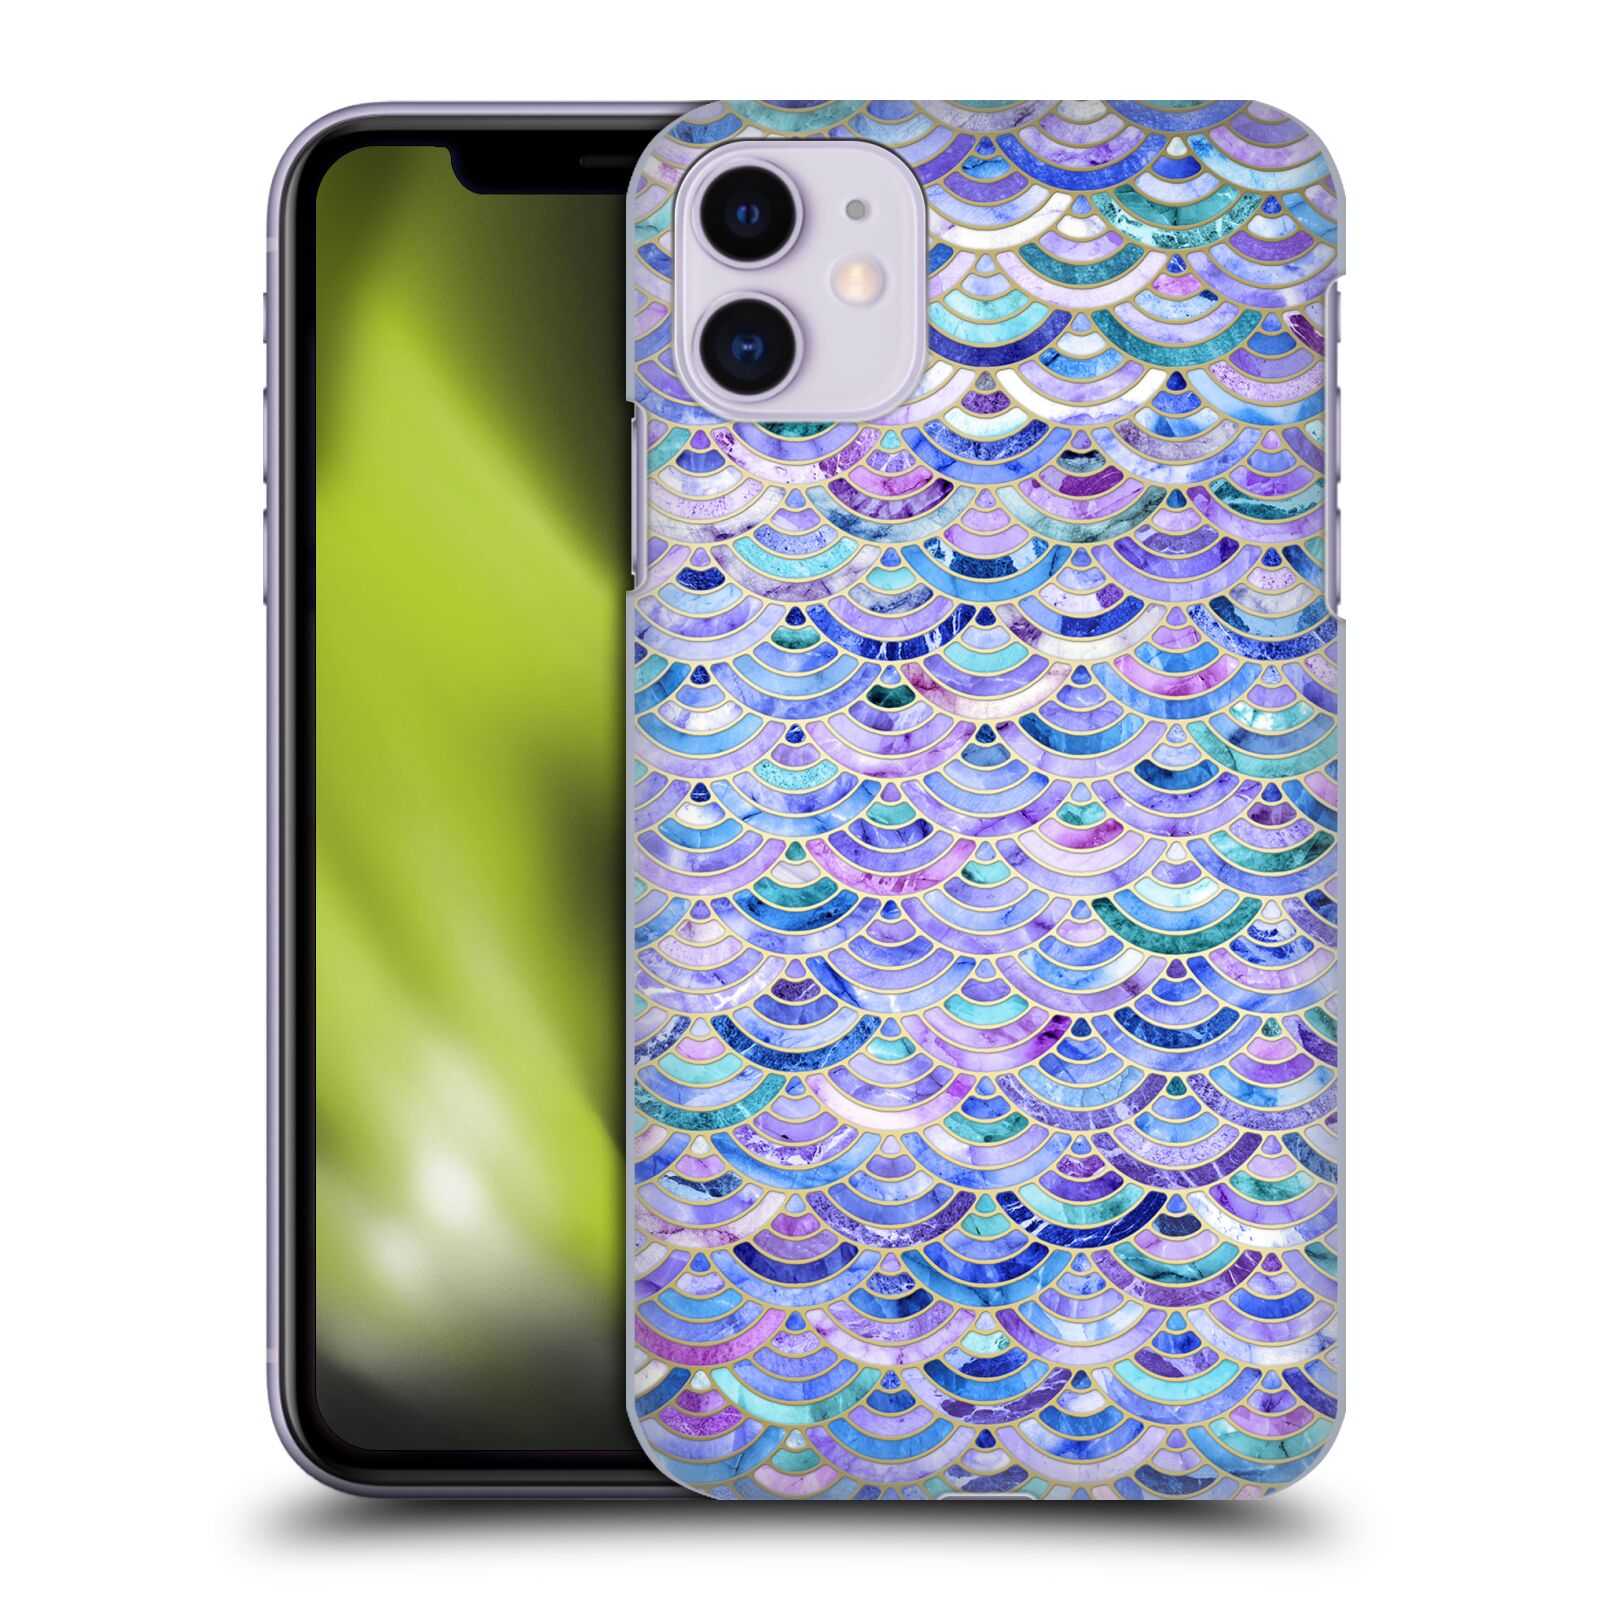 Official Micklyn Le Feuvre Marble Patterns Mosaic In Amethyst And Lapis Lazuli Case for Apple iPhone 11